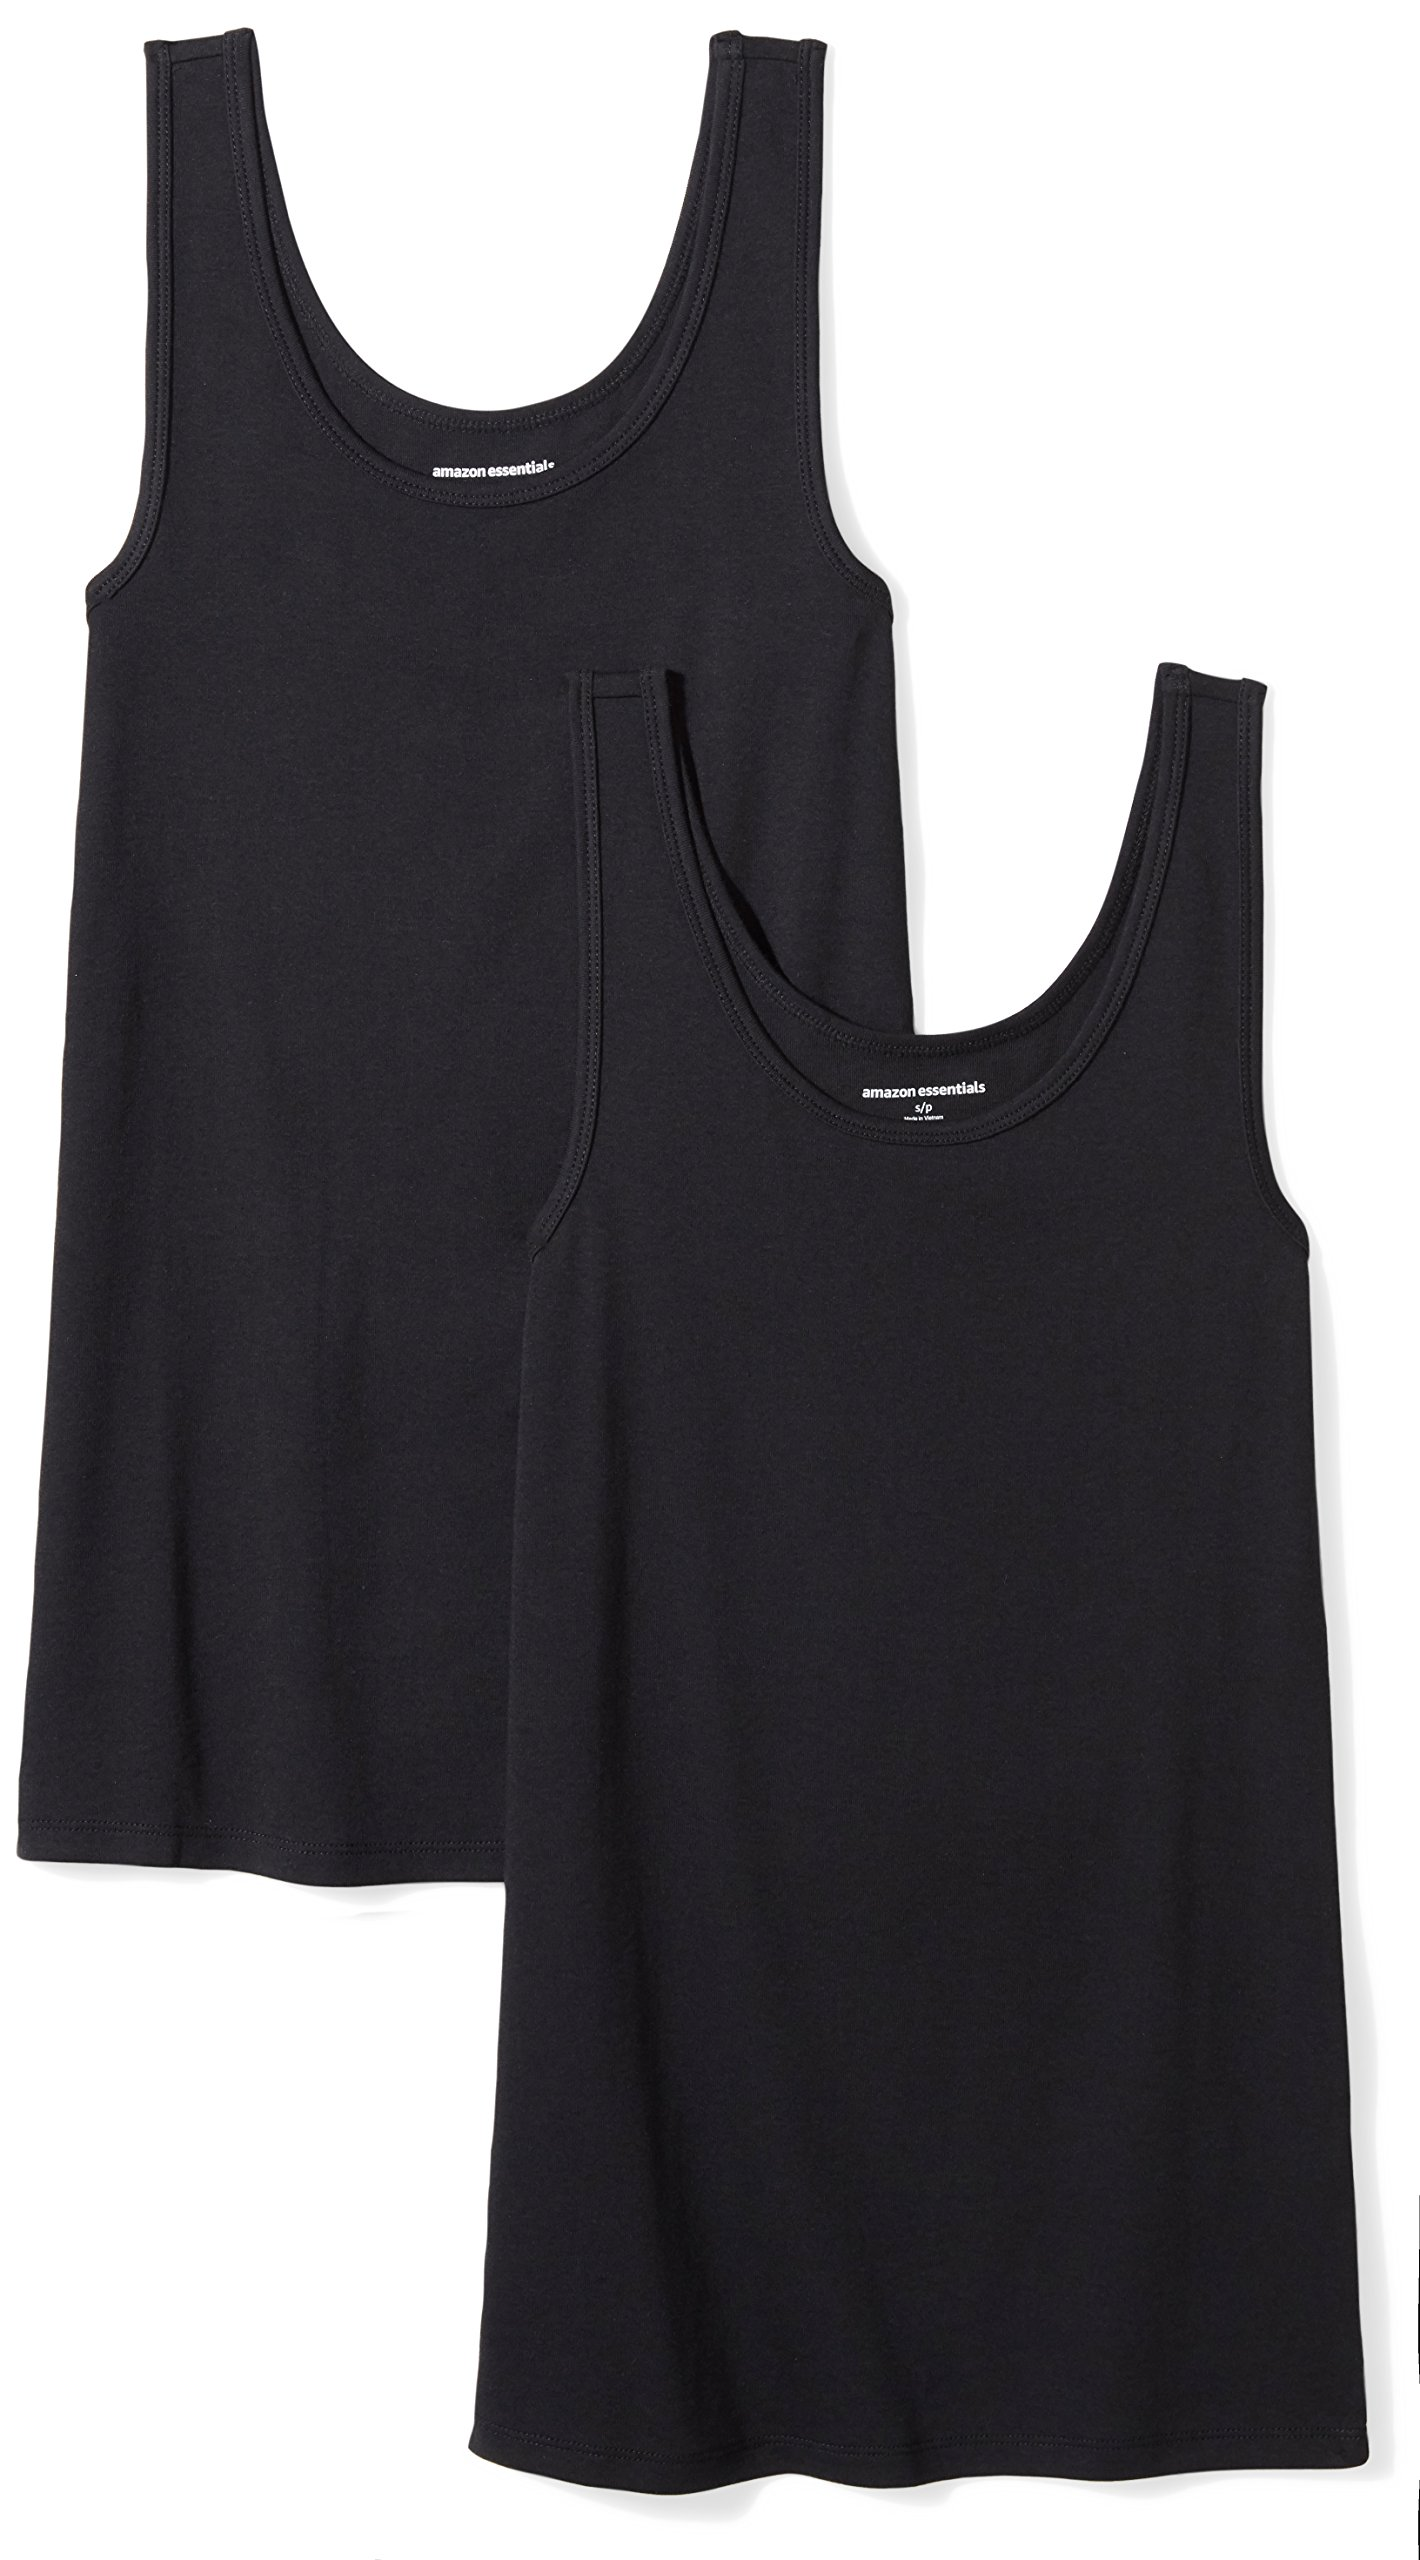 Amazon Essentials Women's 2-Pack Tank, Black, Medium